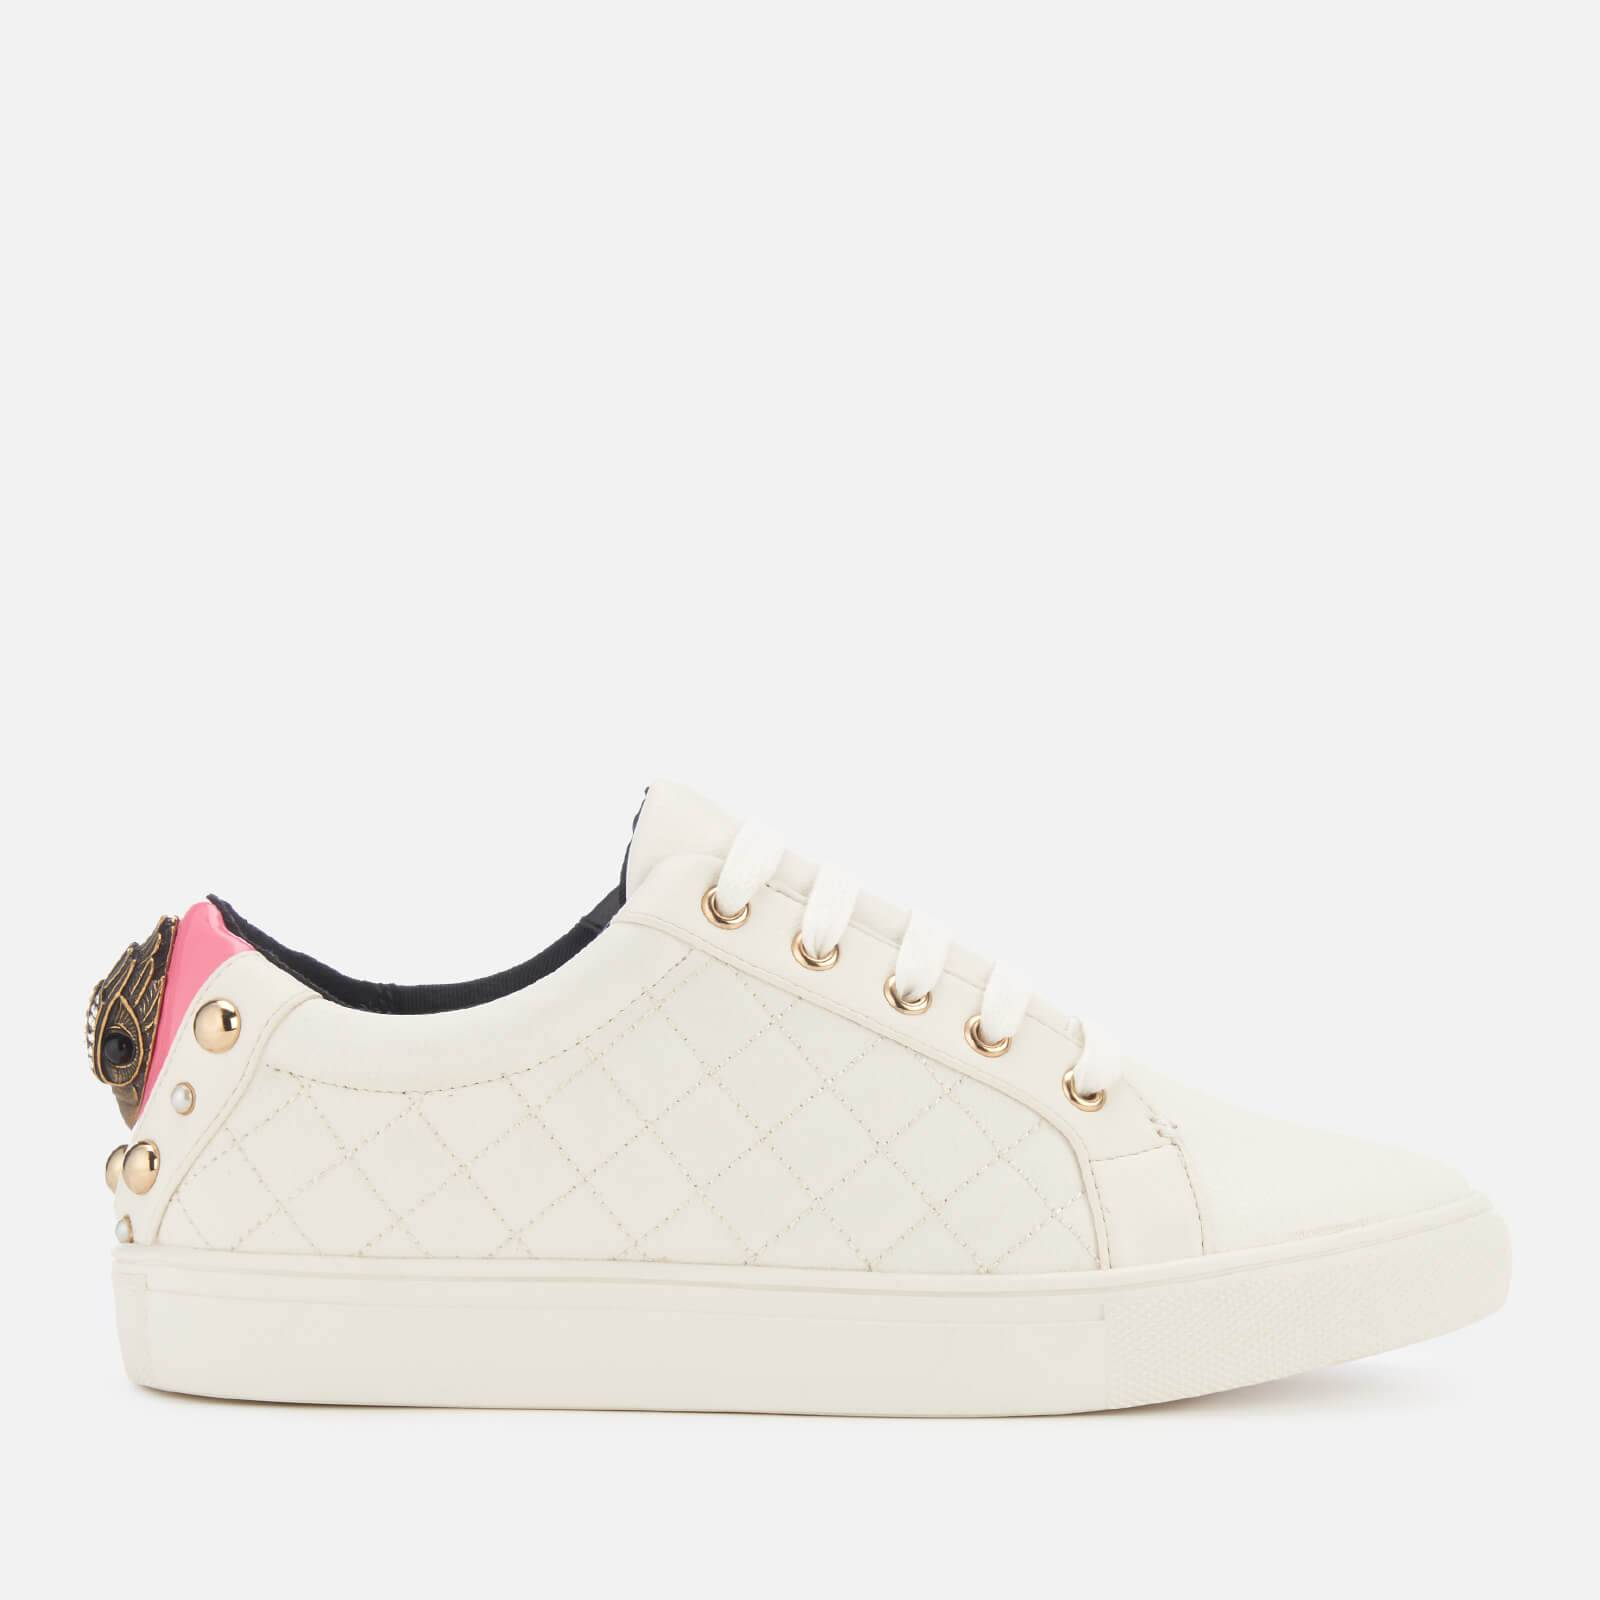 Kurt Geiger London Women's Ludo Leather Low Top Trainers - Pink Comb - UK 3 - White